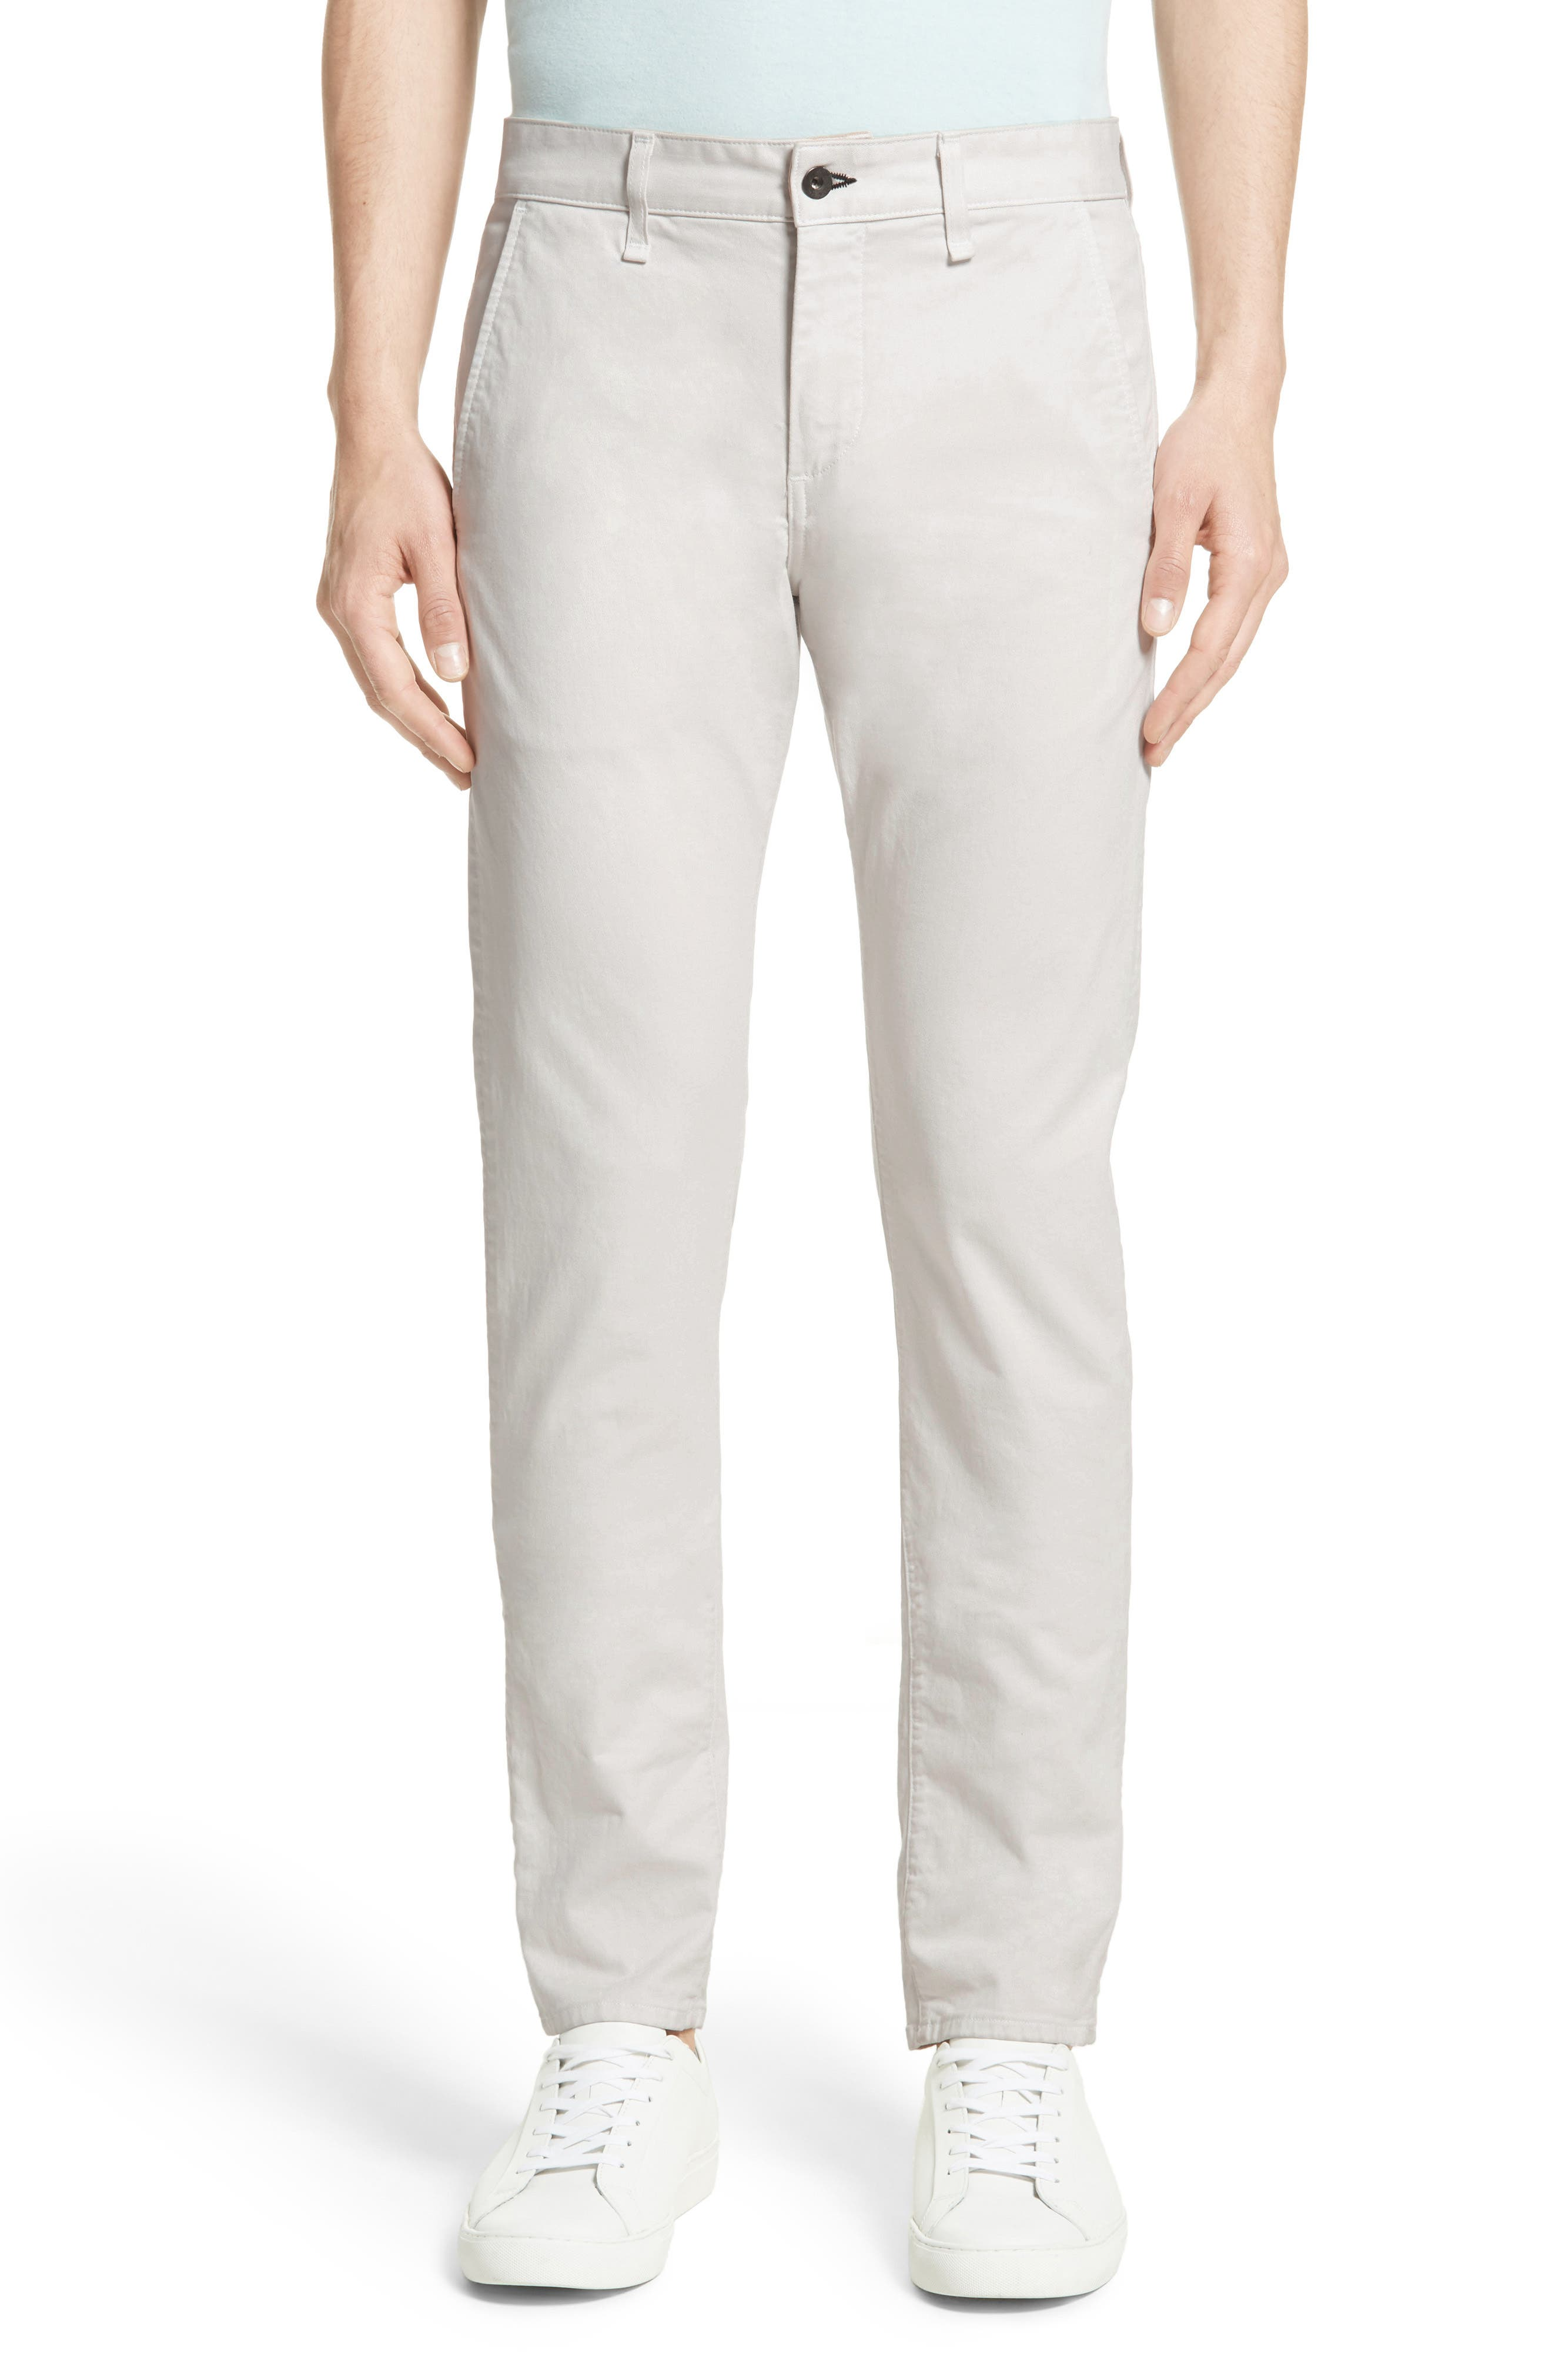 Fit 2 Chinos,                         Main,                         color, Stone